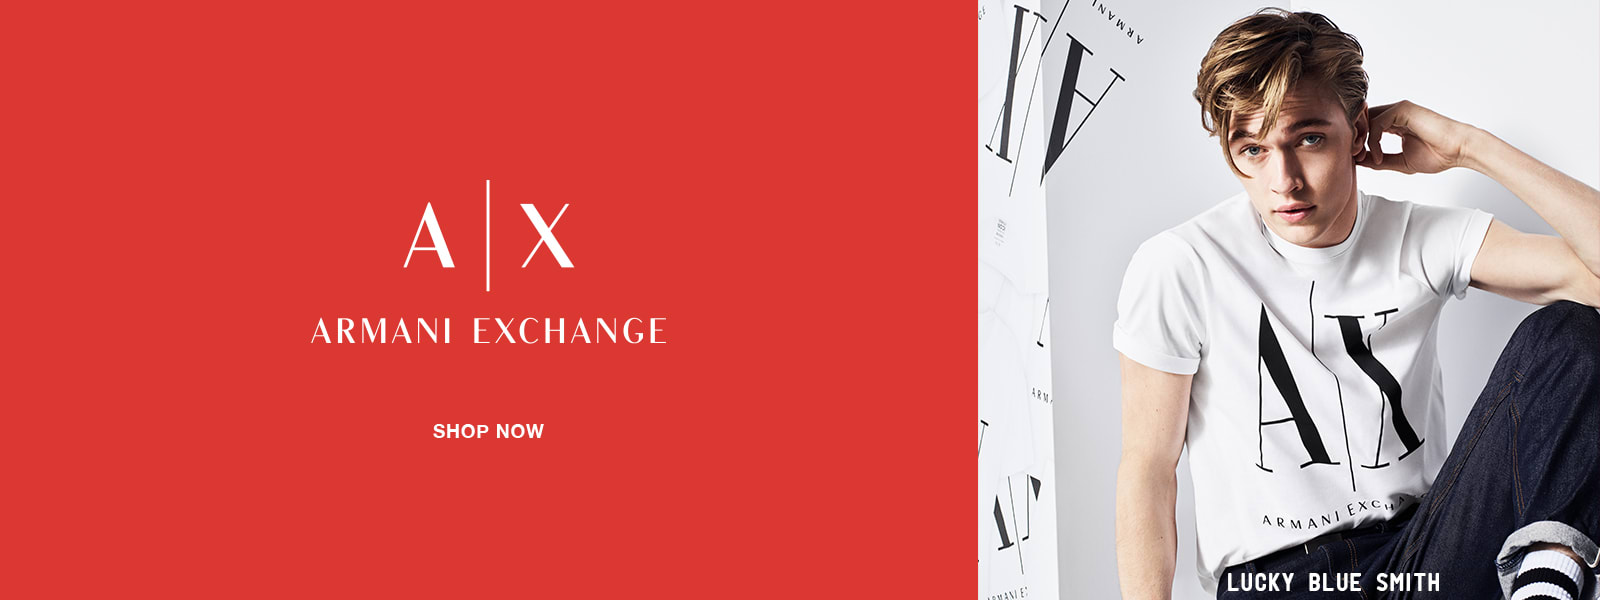 Armani Exchange - Shop Now